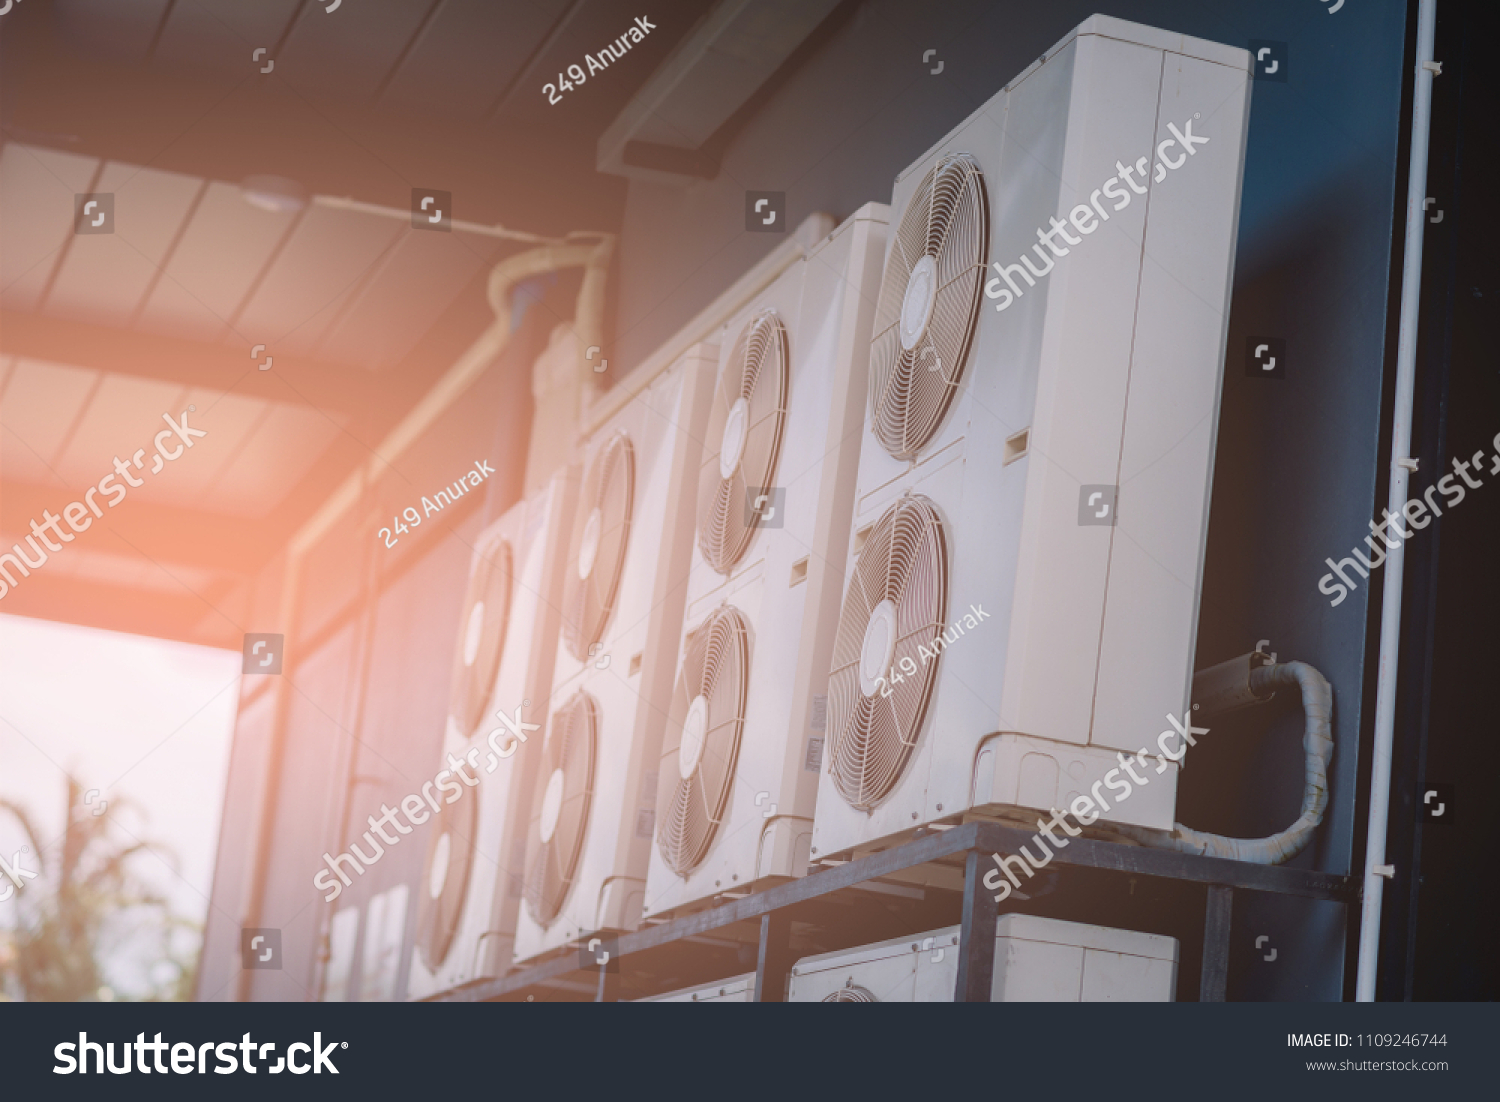 Exterior Air Conditioning Unit On Wall Stock Photo (Edit Now